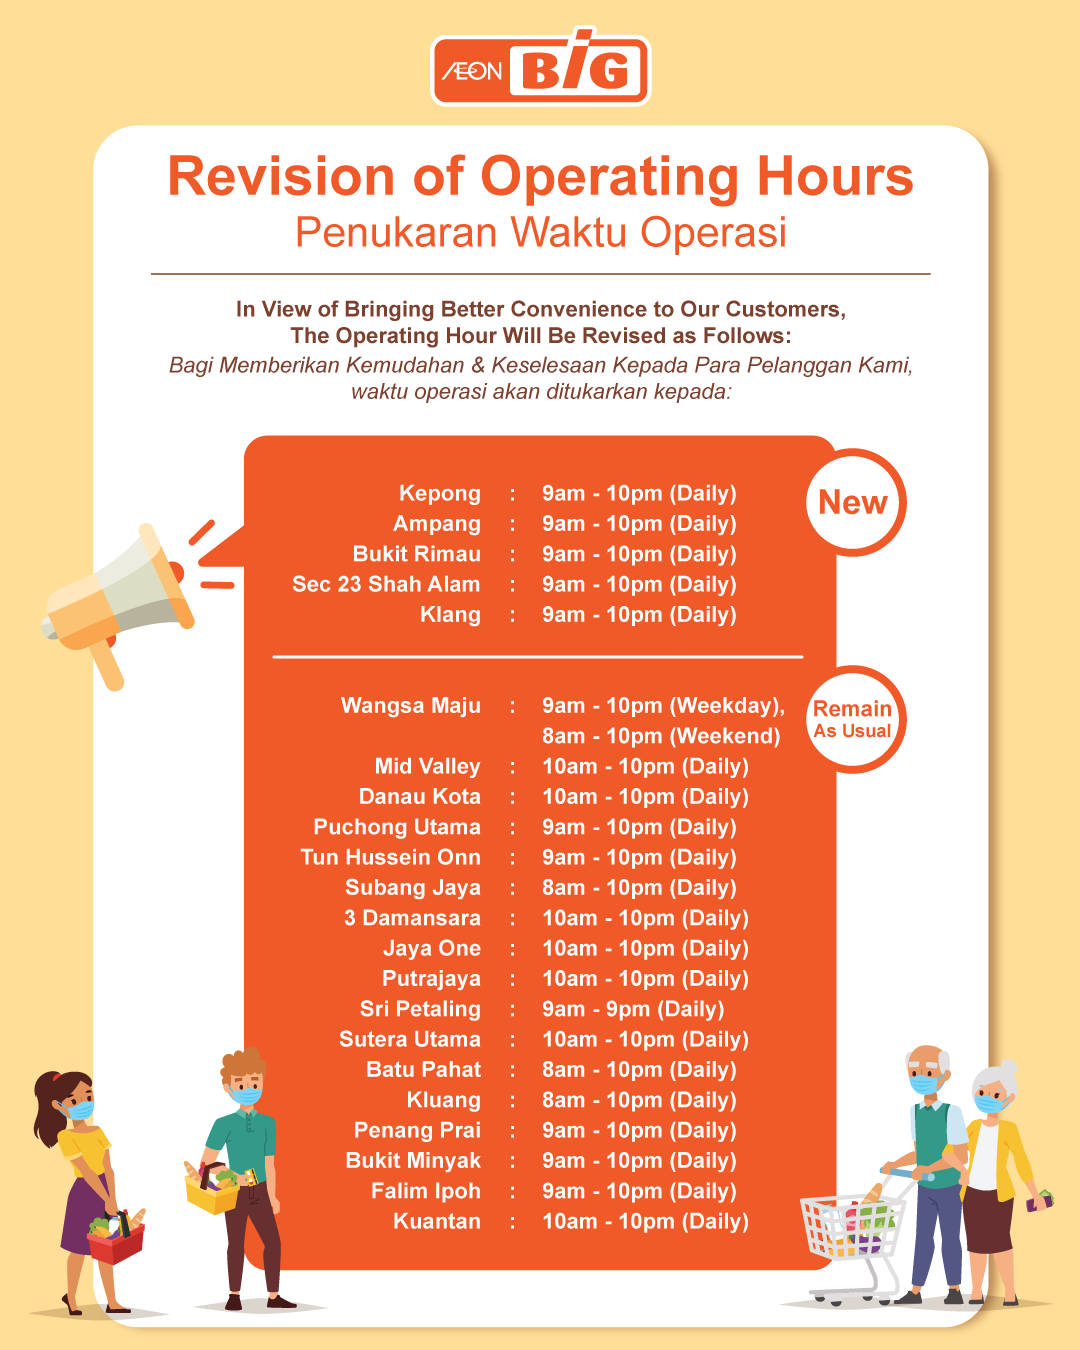 Revision of Operating Hours